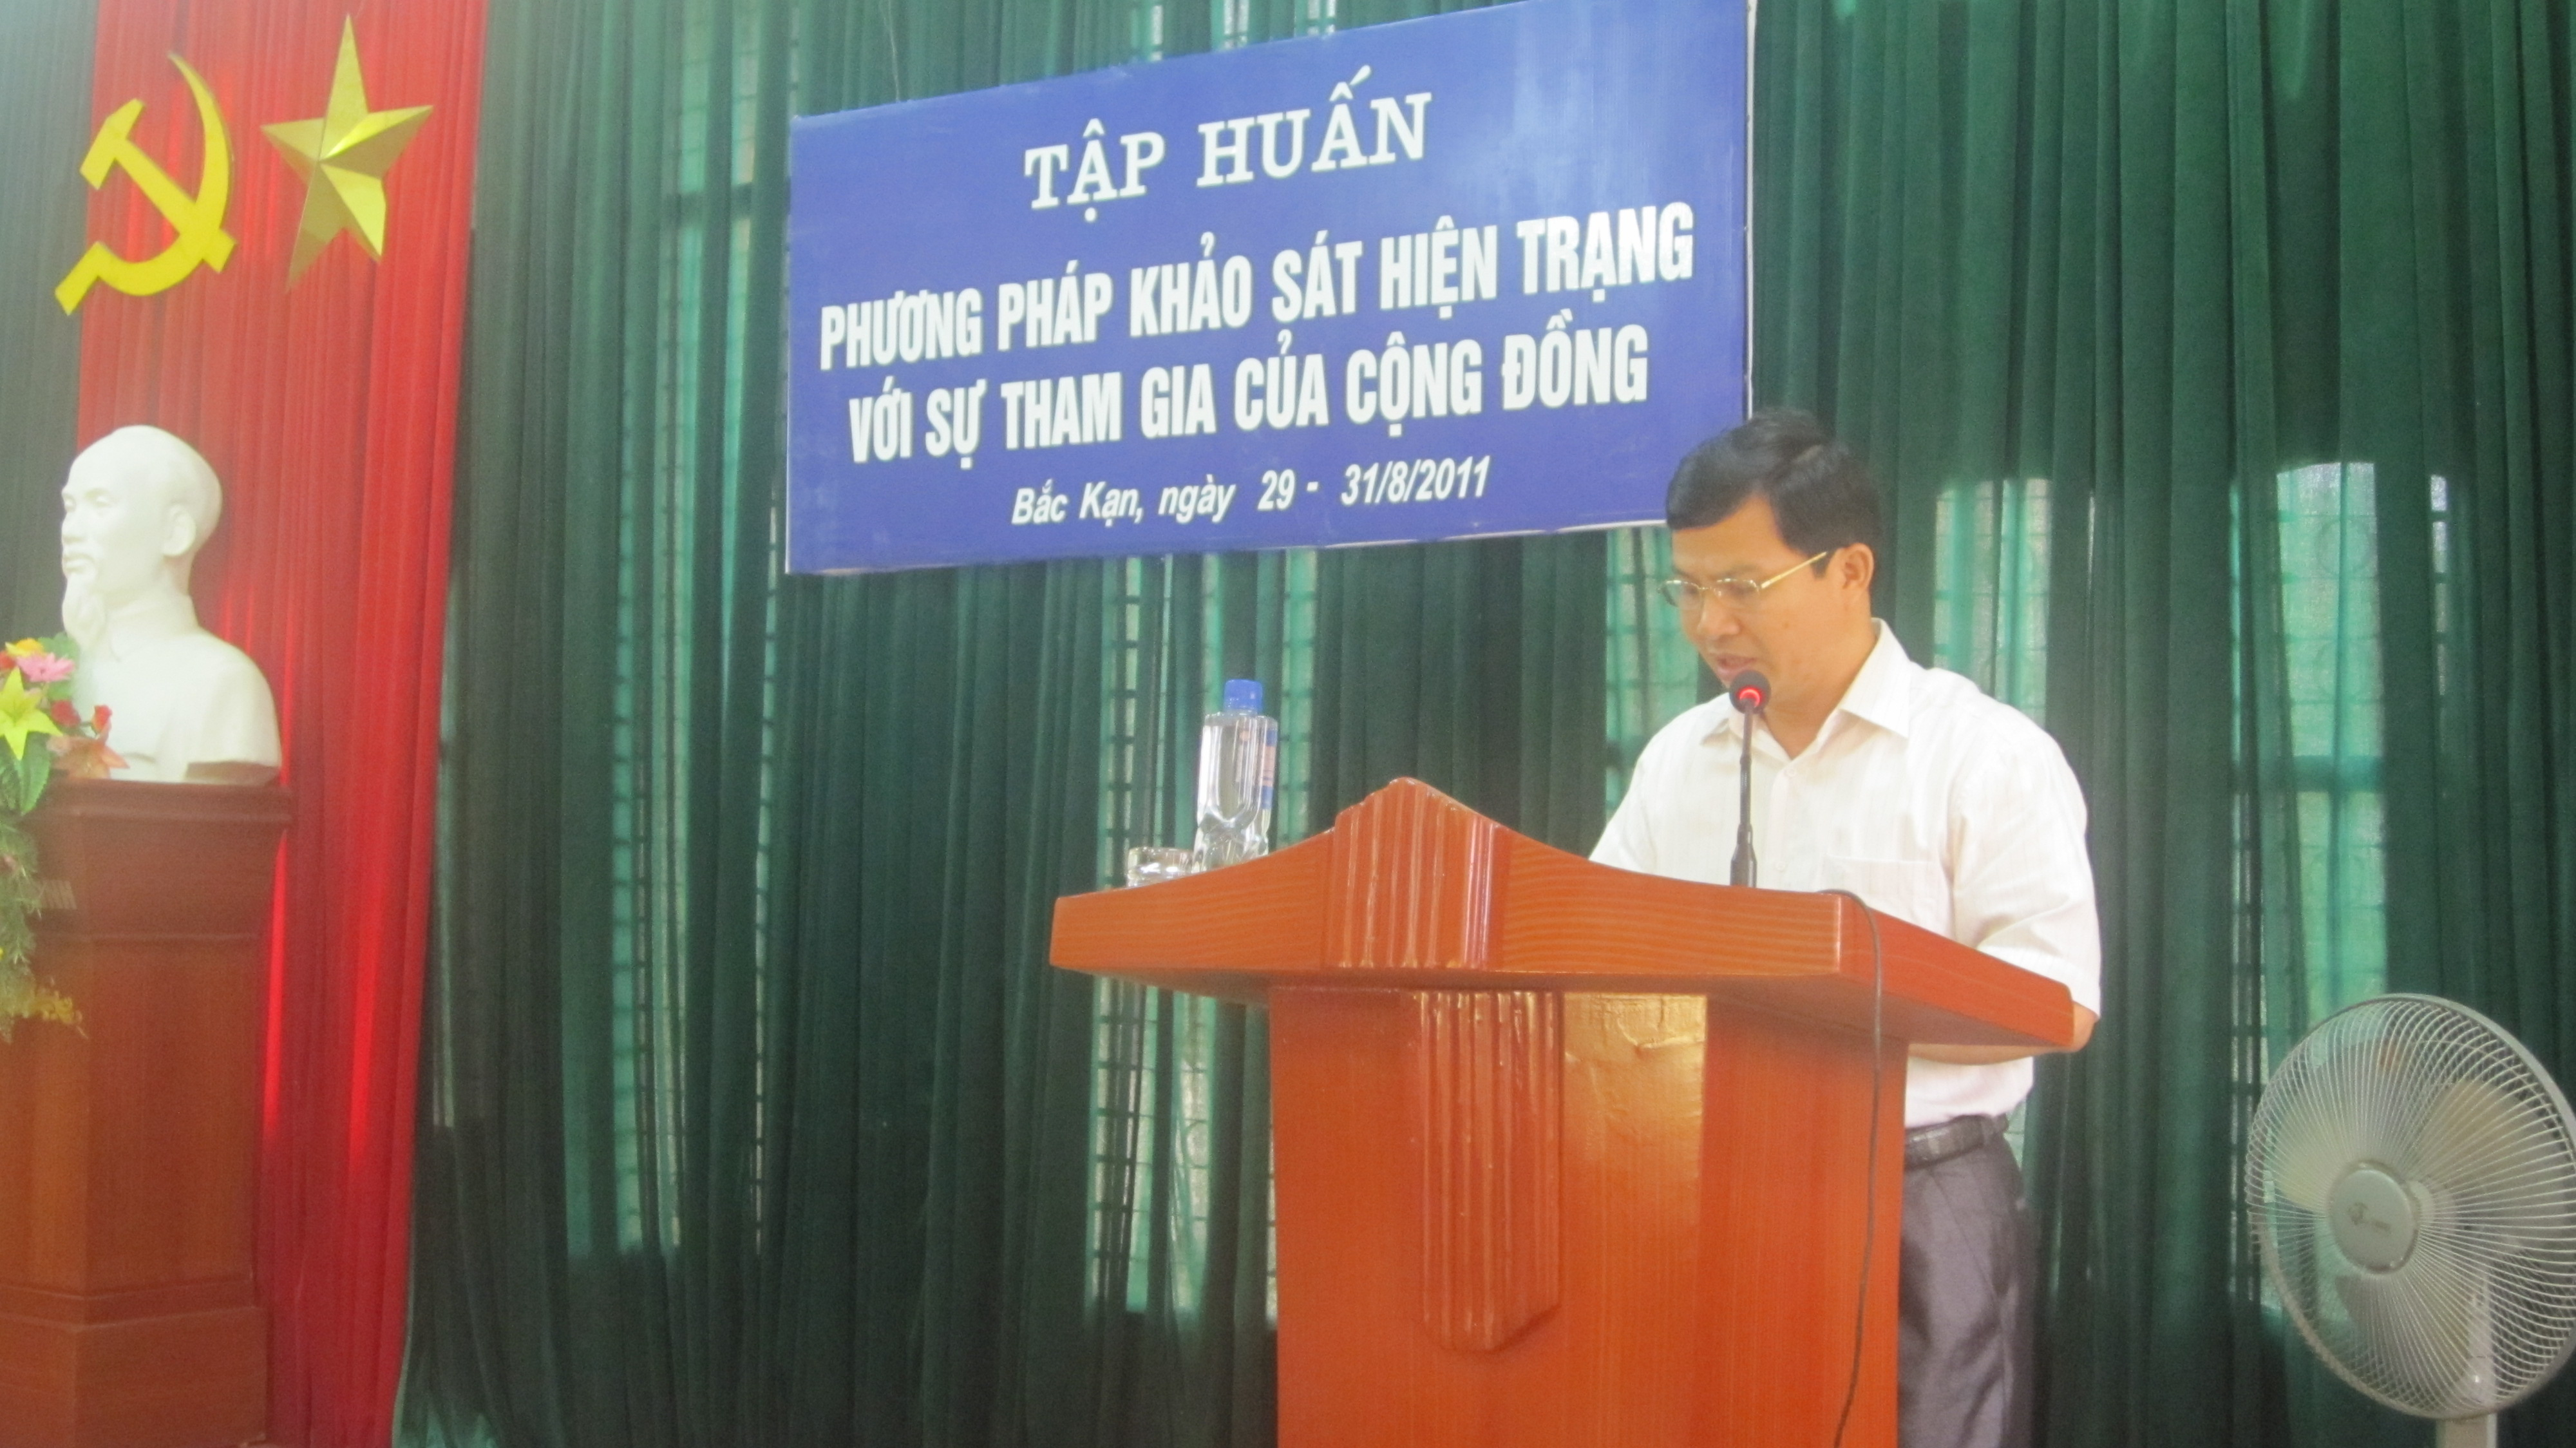 mr. leng van chien chairman of ban kan town peoples committee speaks at the training